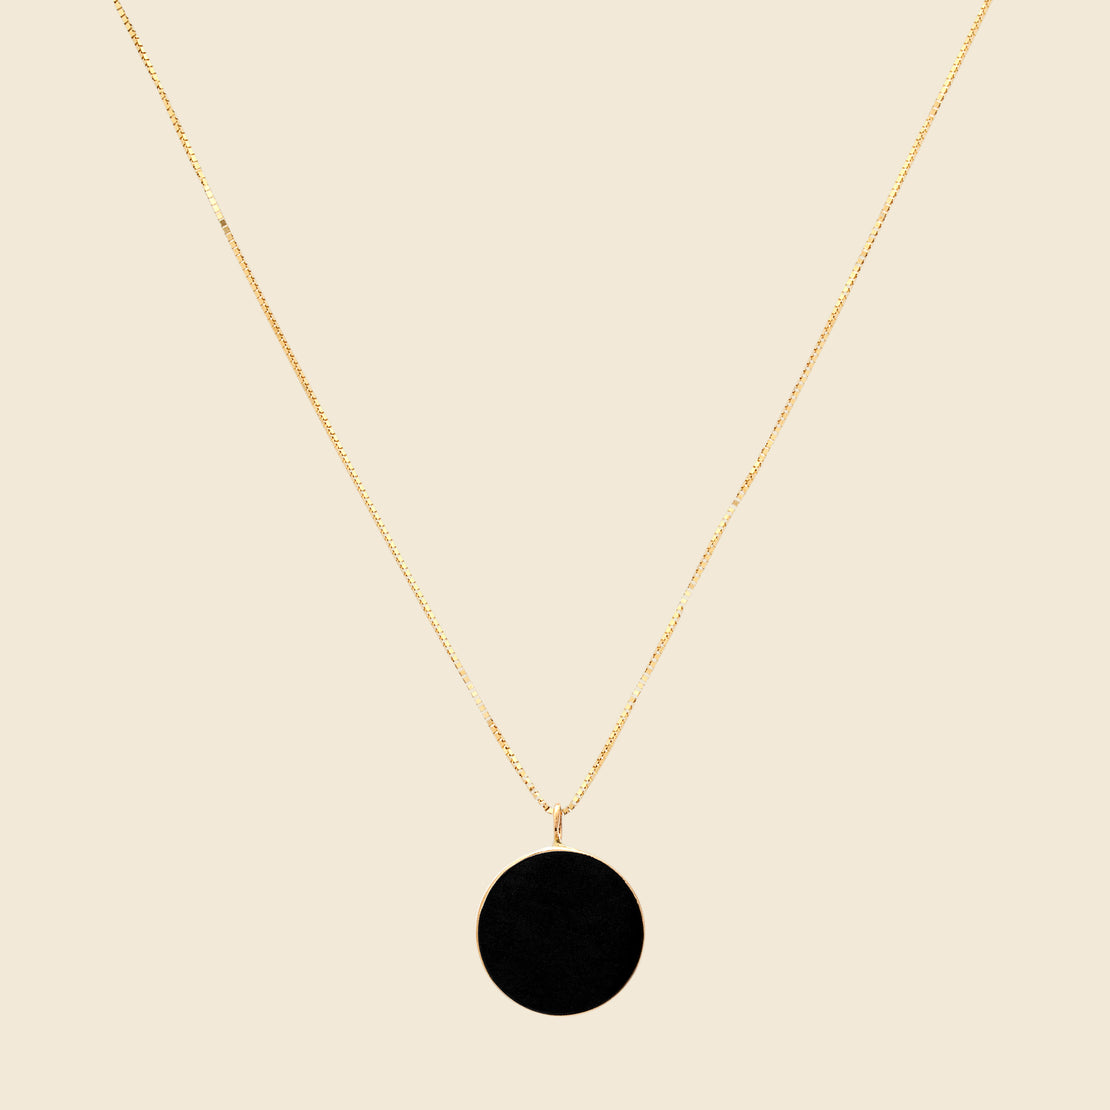 Young in the Mountains Circ Necklace - Black Jade